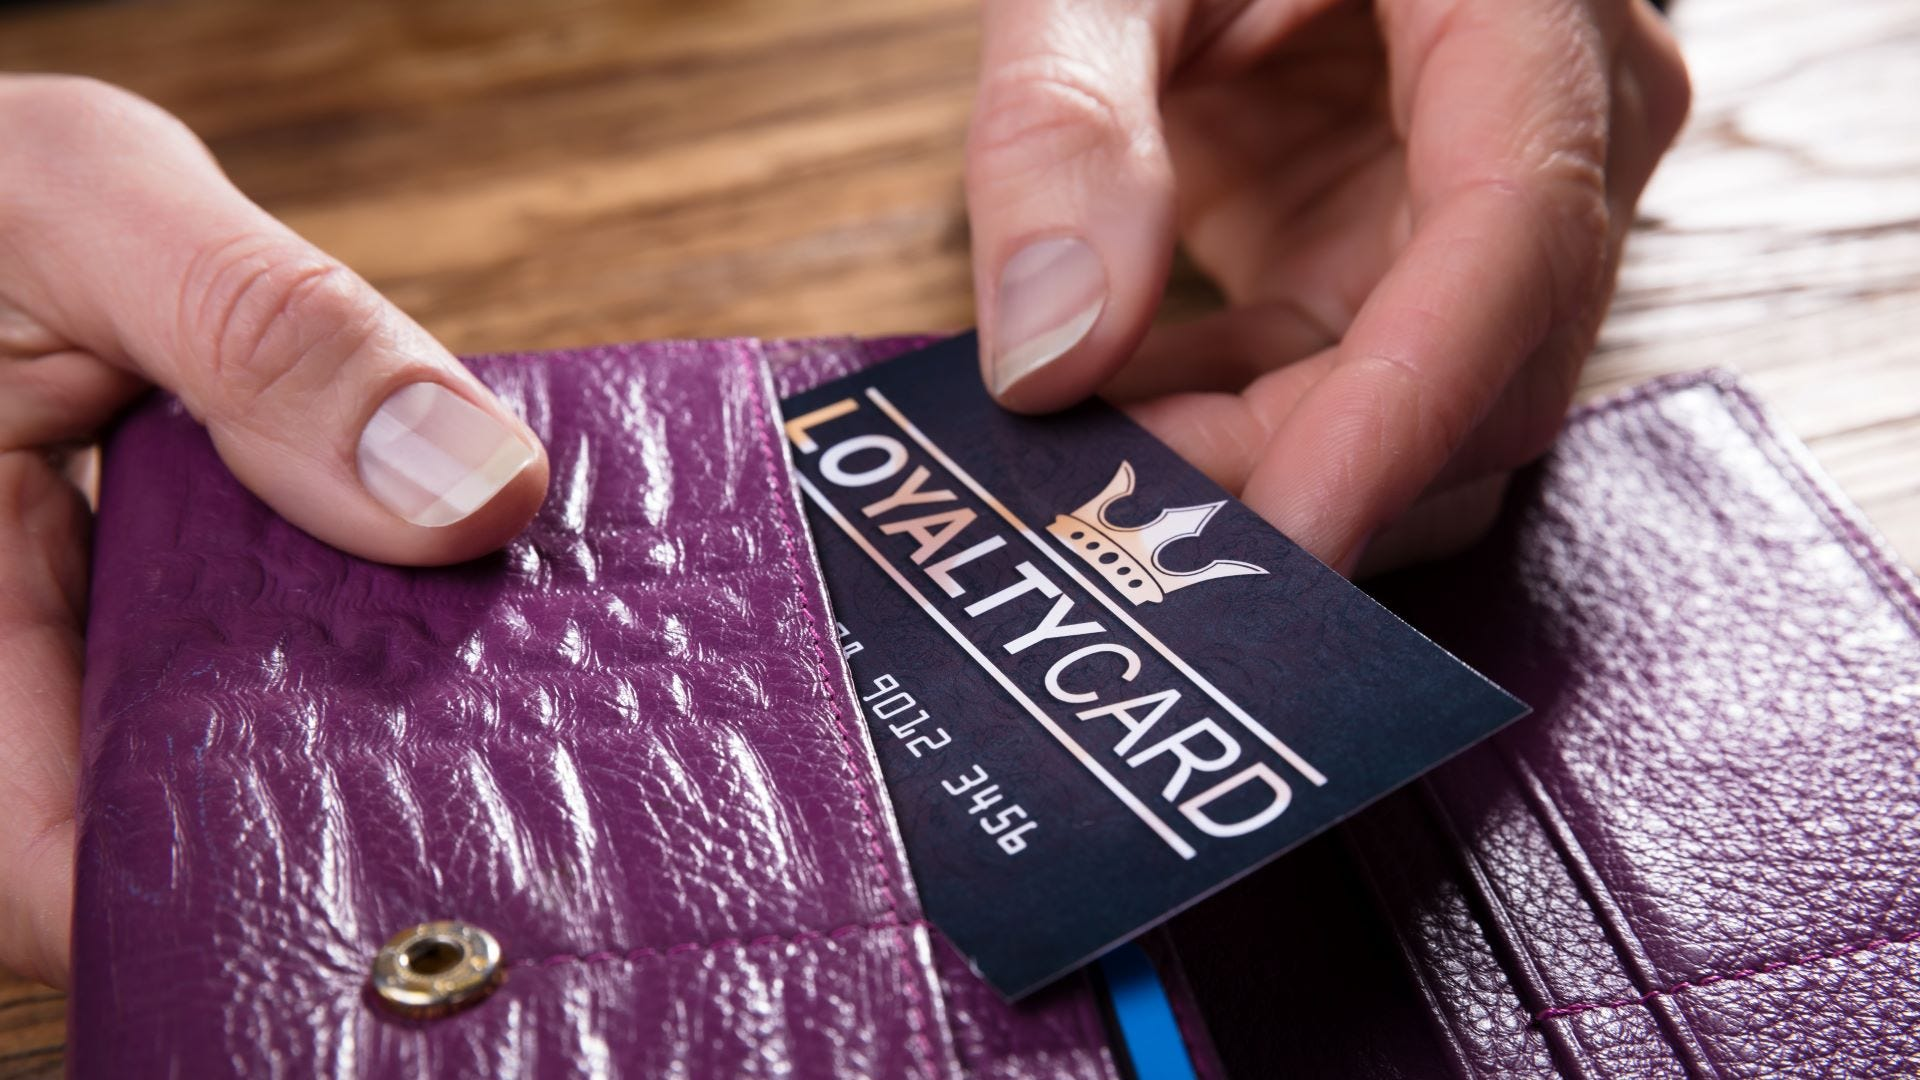 Someone removing a loyalty card from a wallet.